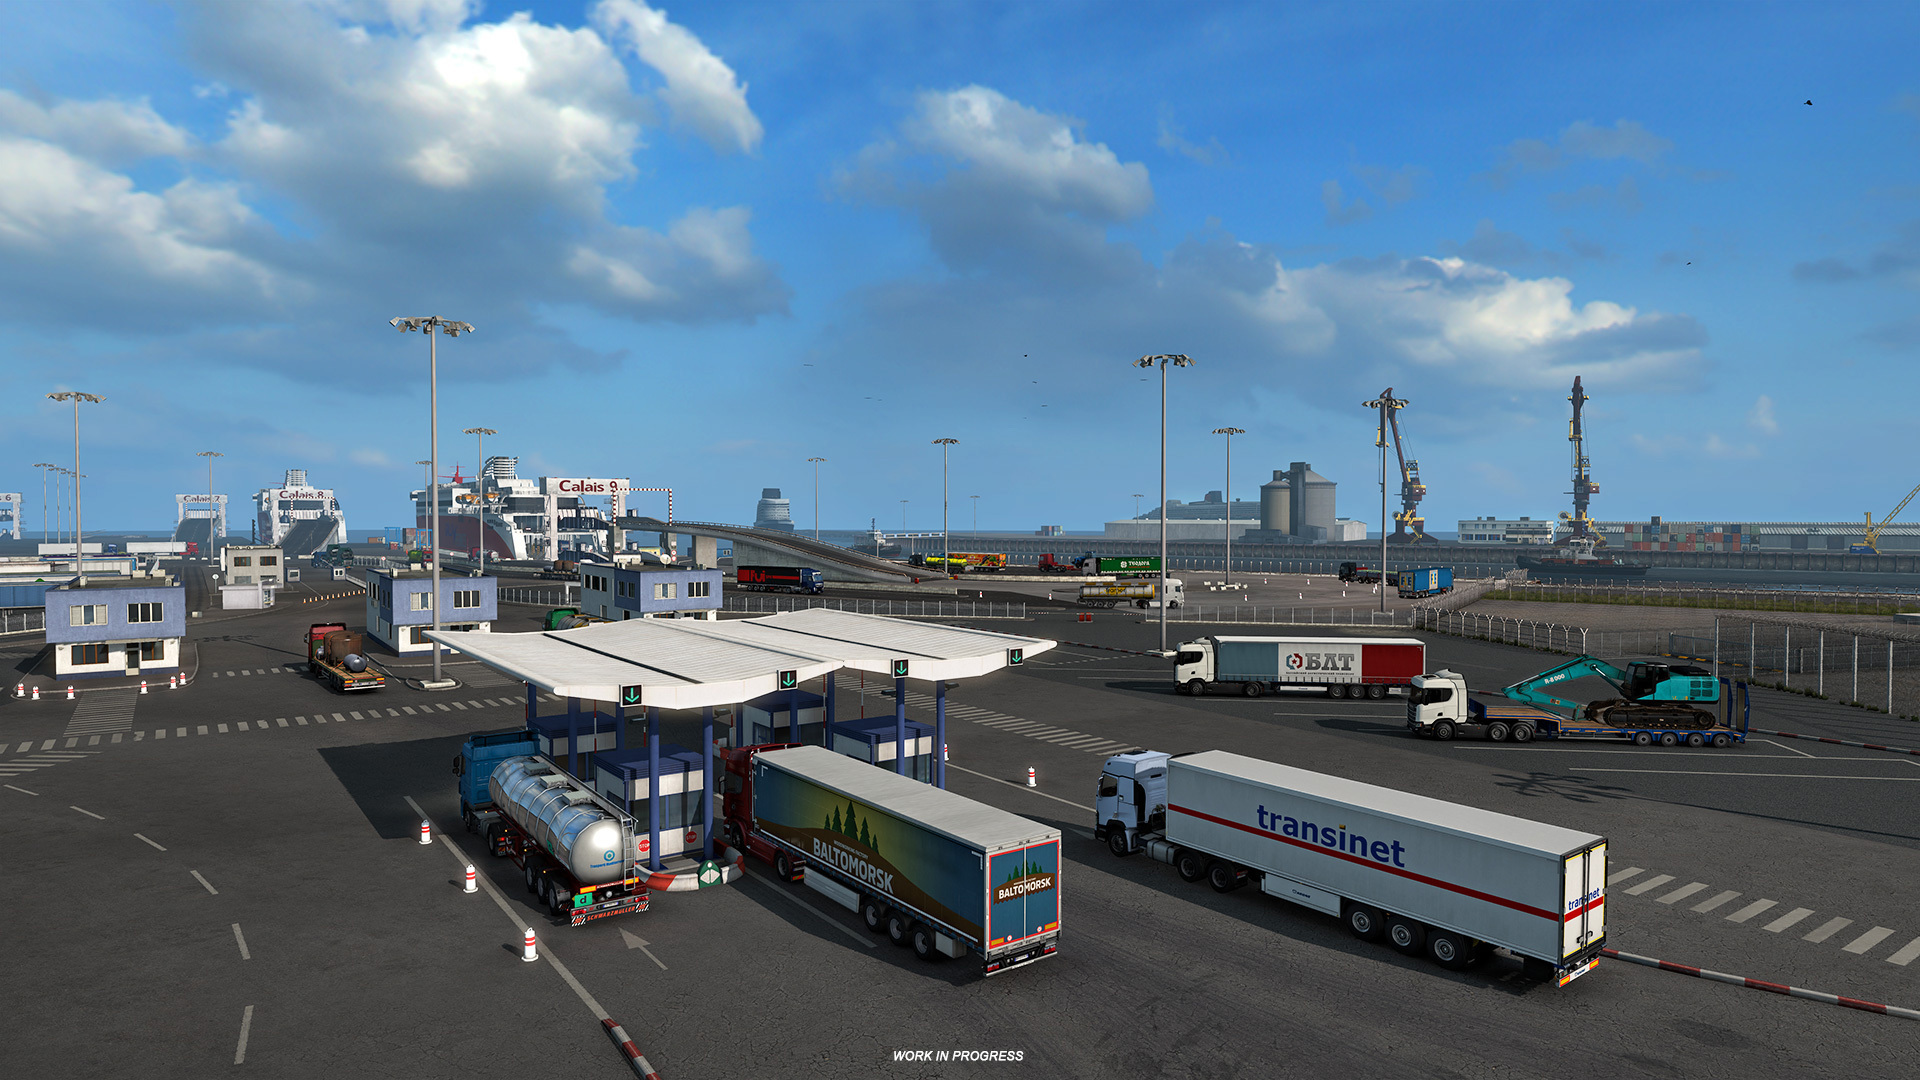 Euro Truck Simulator 2: City of Calais Reskin